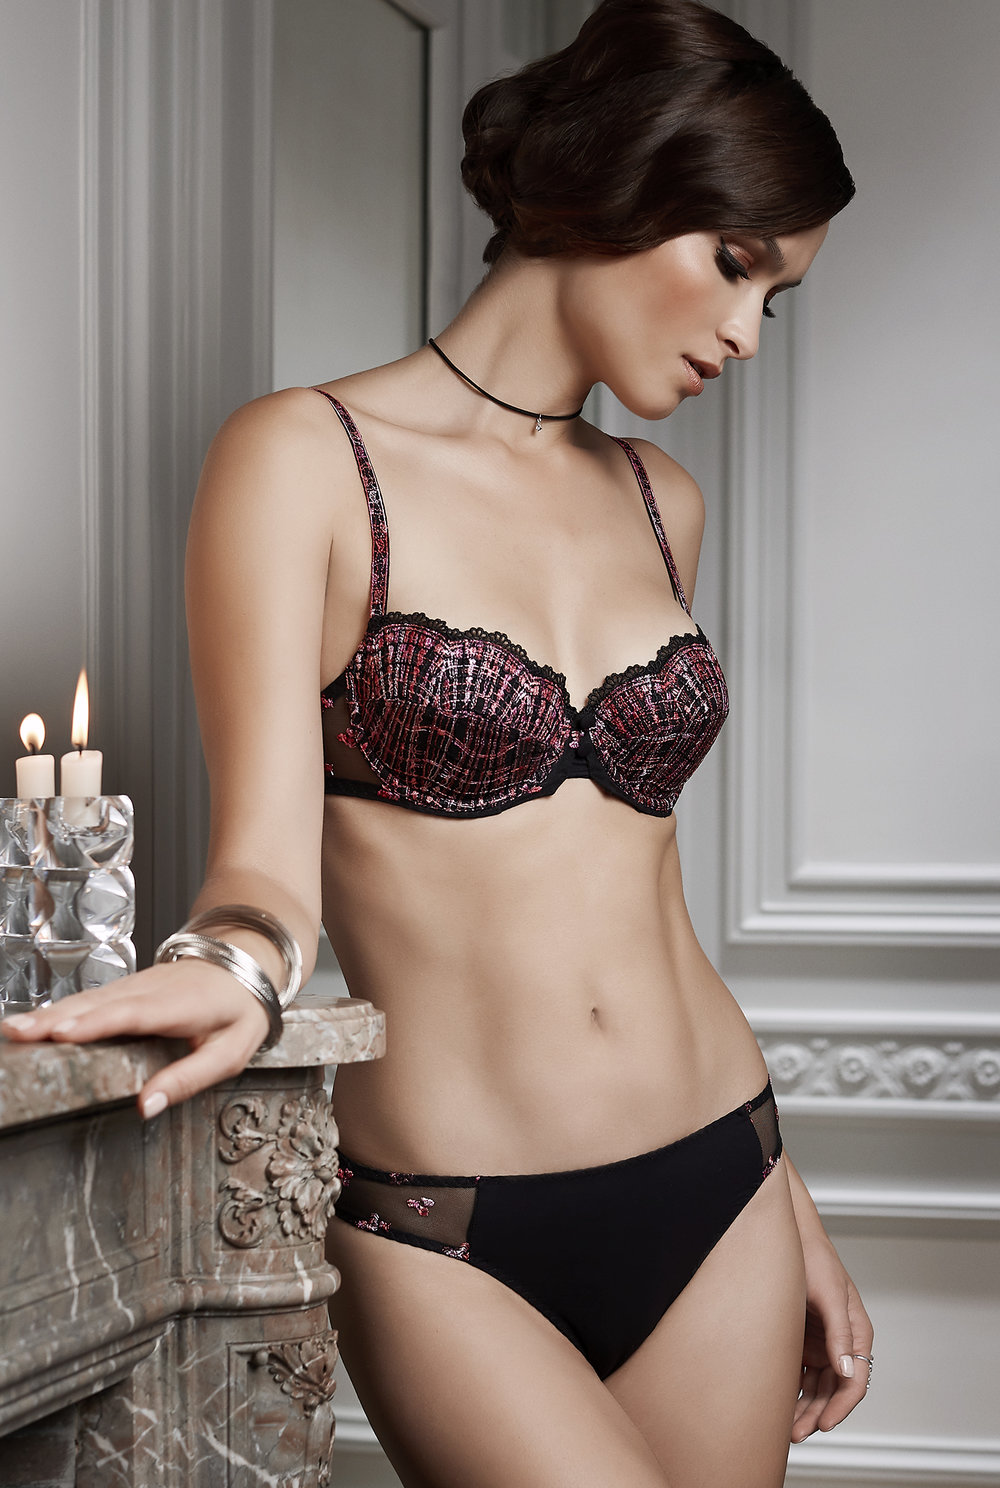 Joli Môme horizontal-cut amplimousse, sizes 85 to 95 a, b, c, d : $93     String, sizes 36 to 46: $43